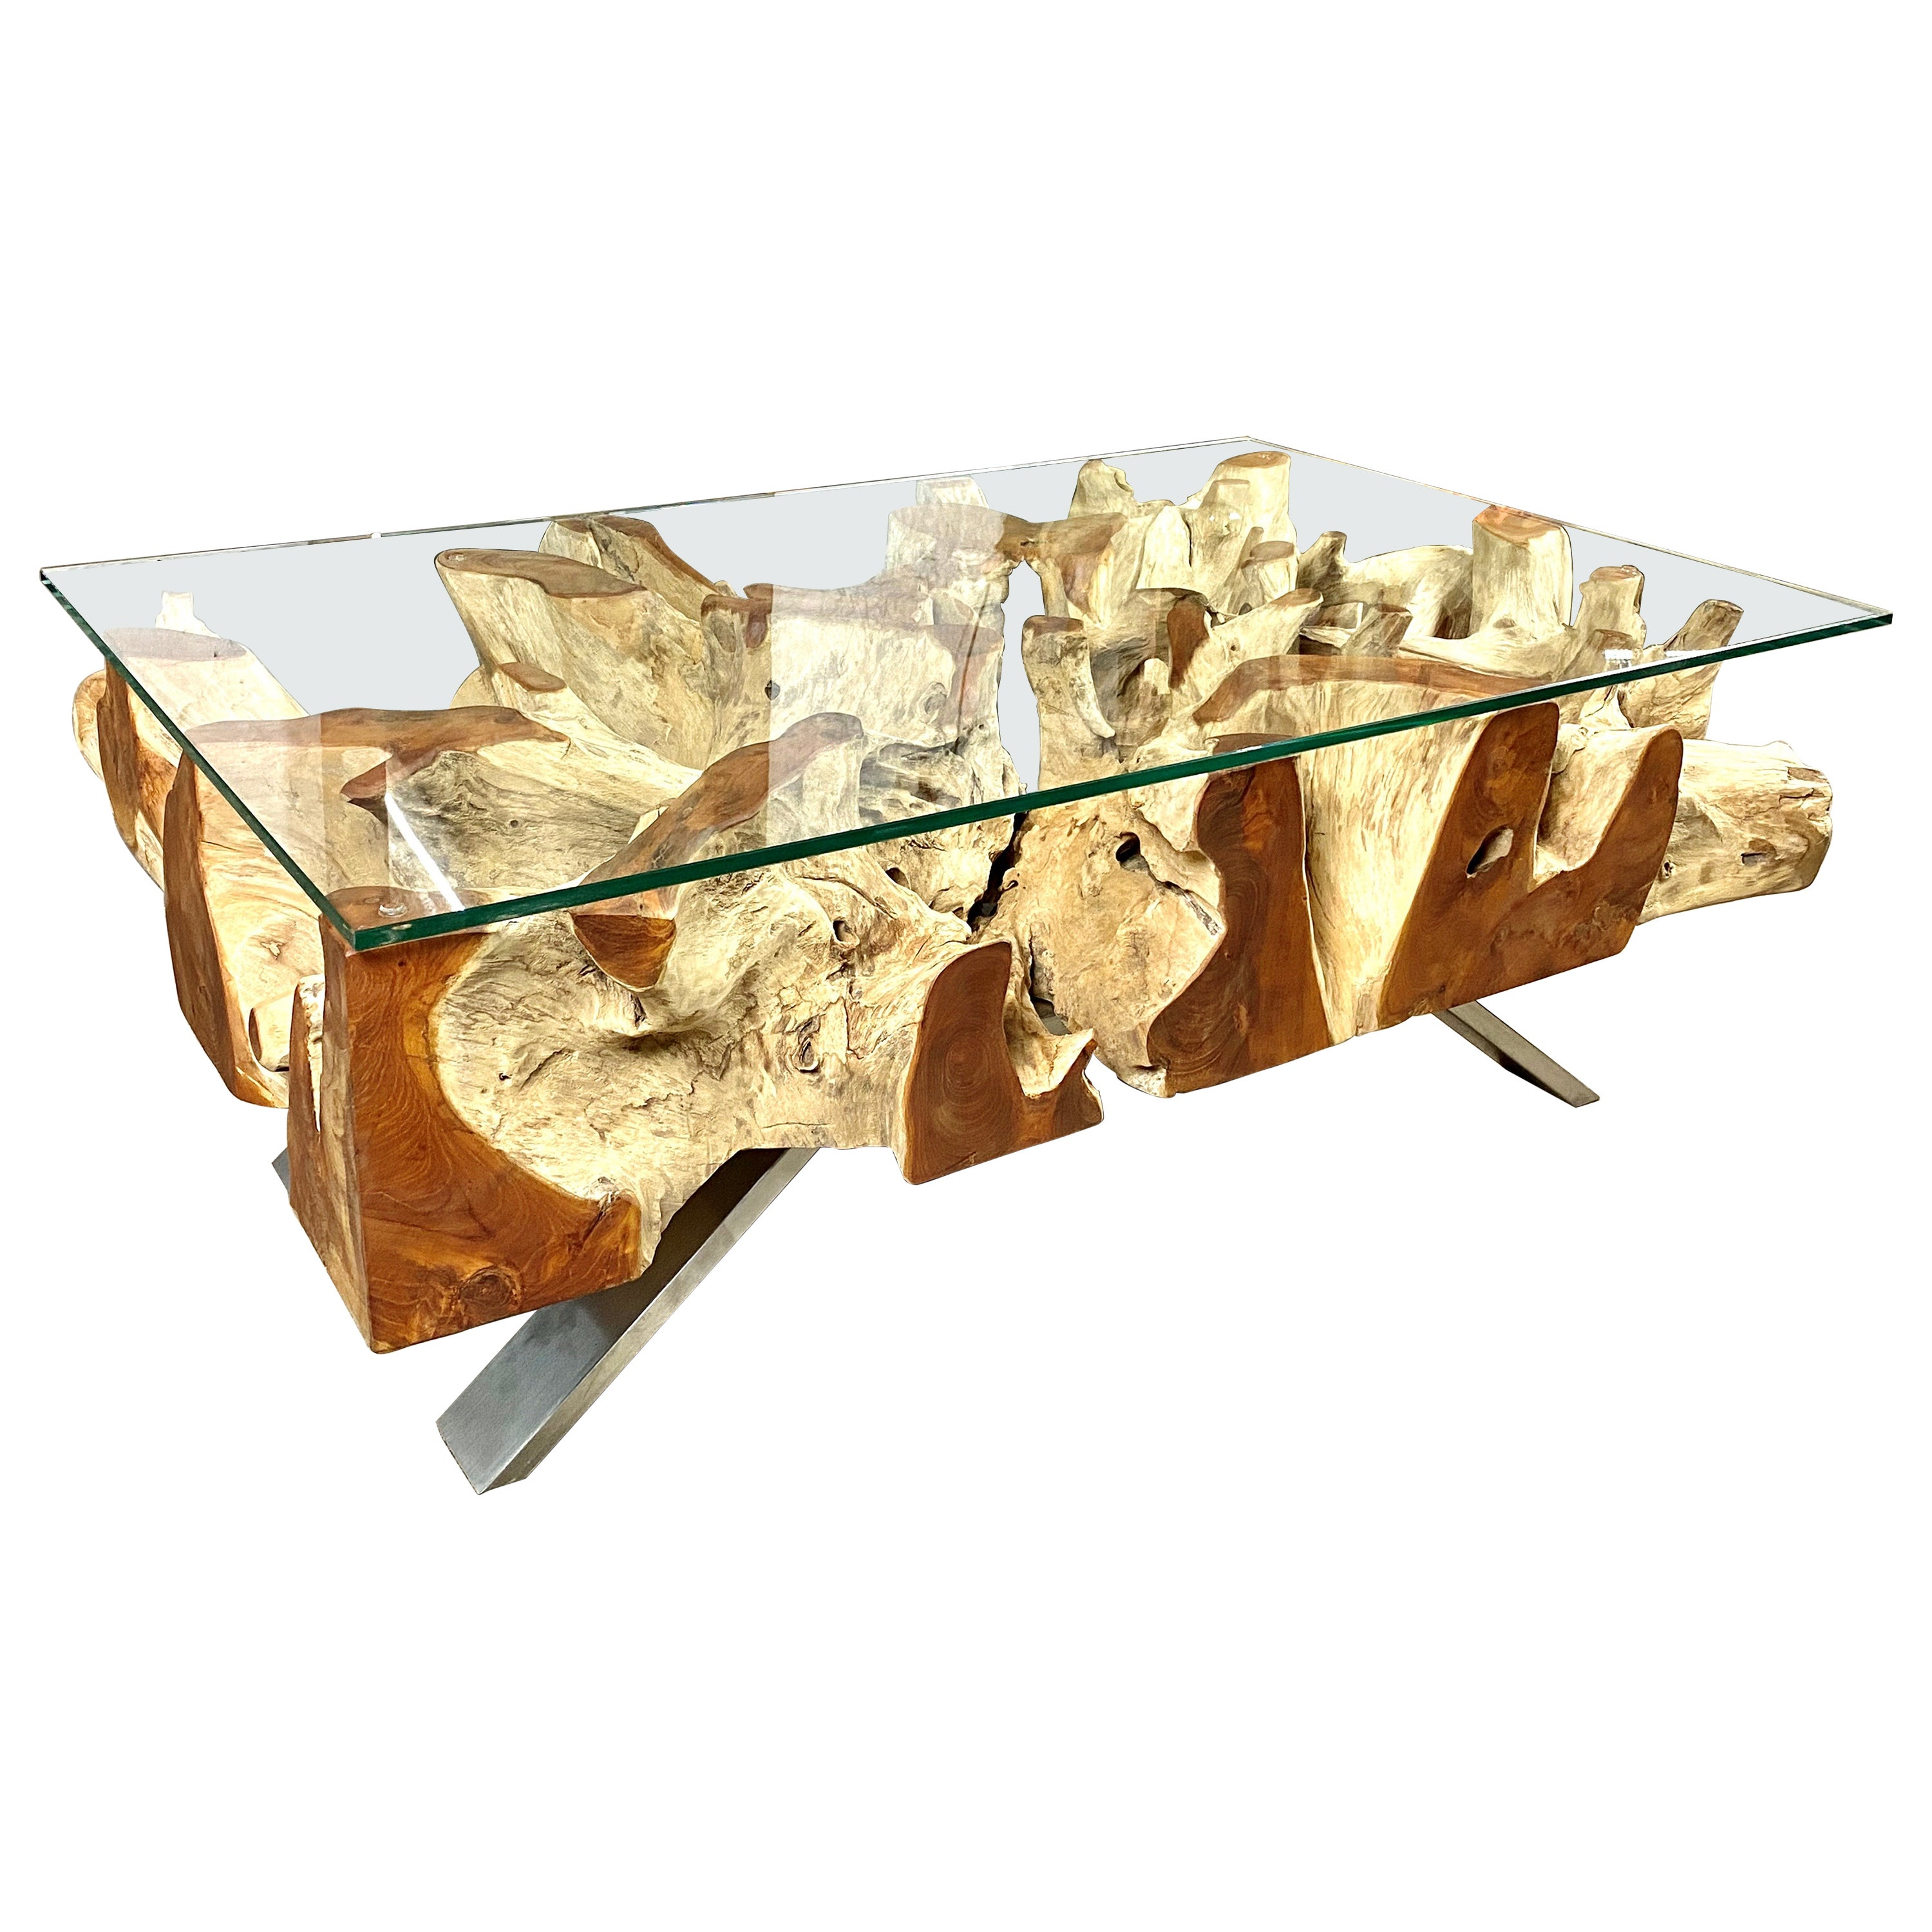 Organic Modern Teak Root Coffee Table with Safety Glass Plate